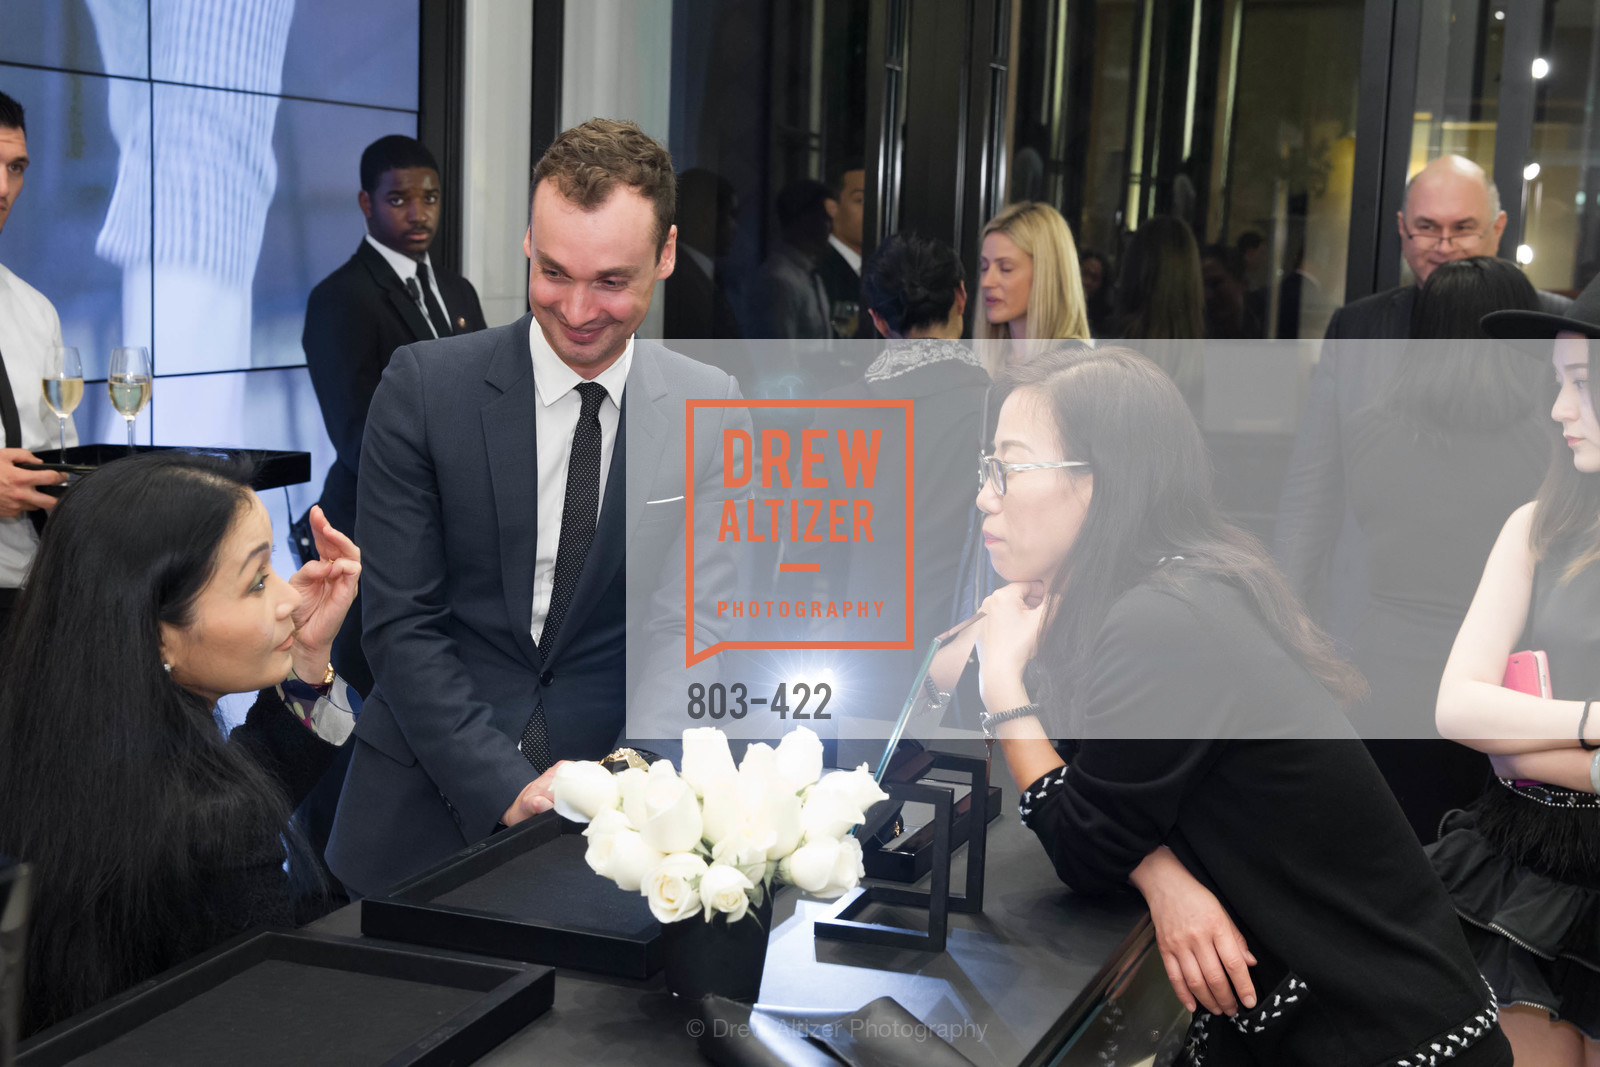 Extras, Chanel San Francisco Lion, October 28th, 2015, Photo,Drew Altizer, Drew Altizer Photography, full-service event agency, private events, San Francisco photographer, photographer California